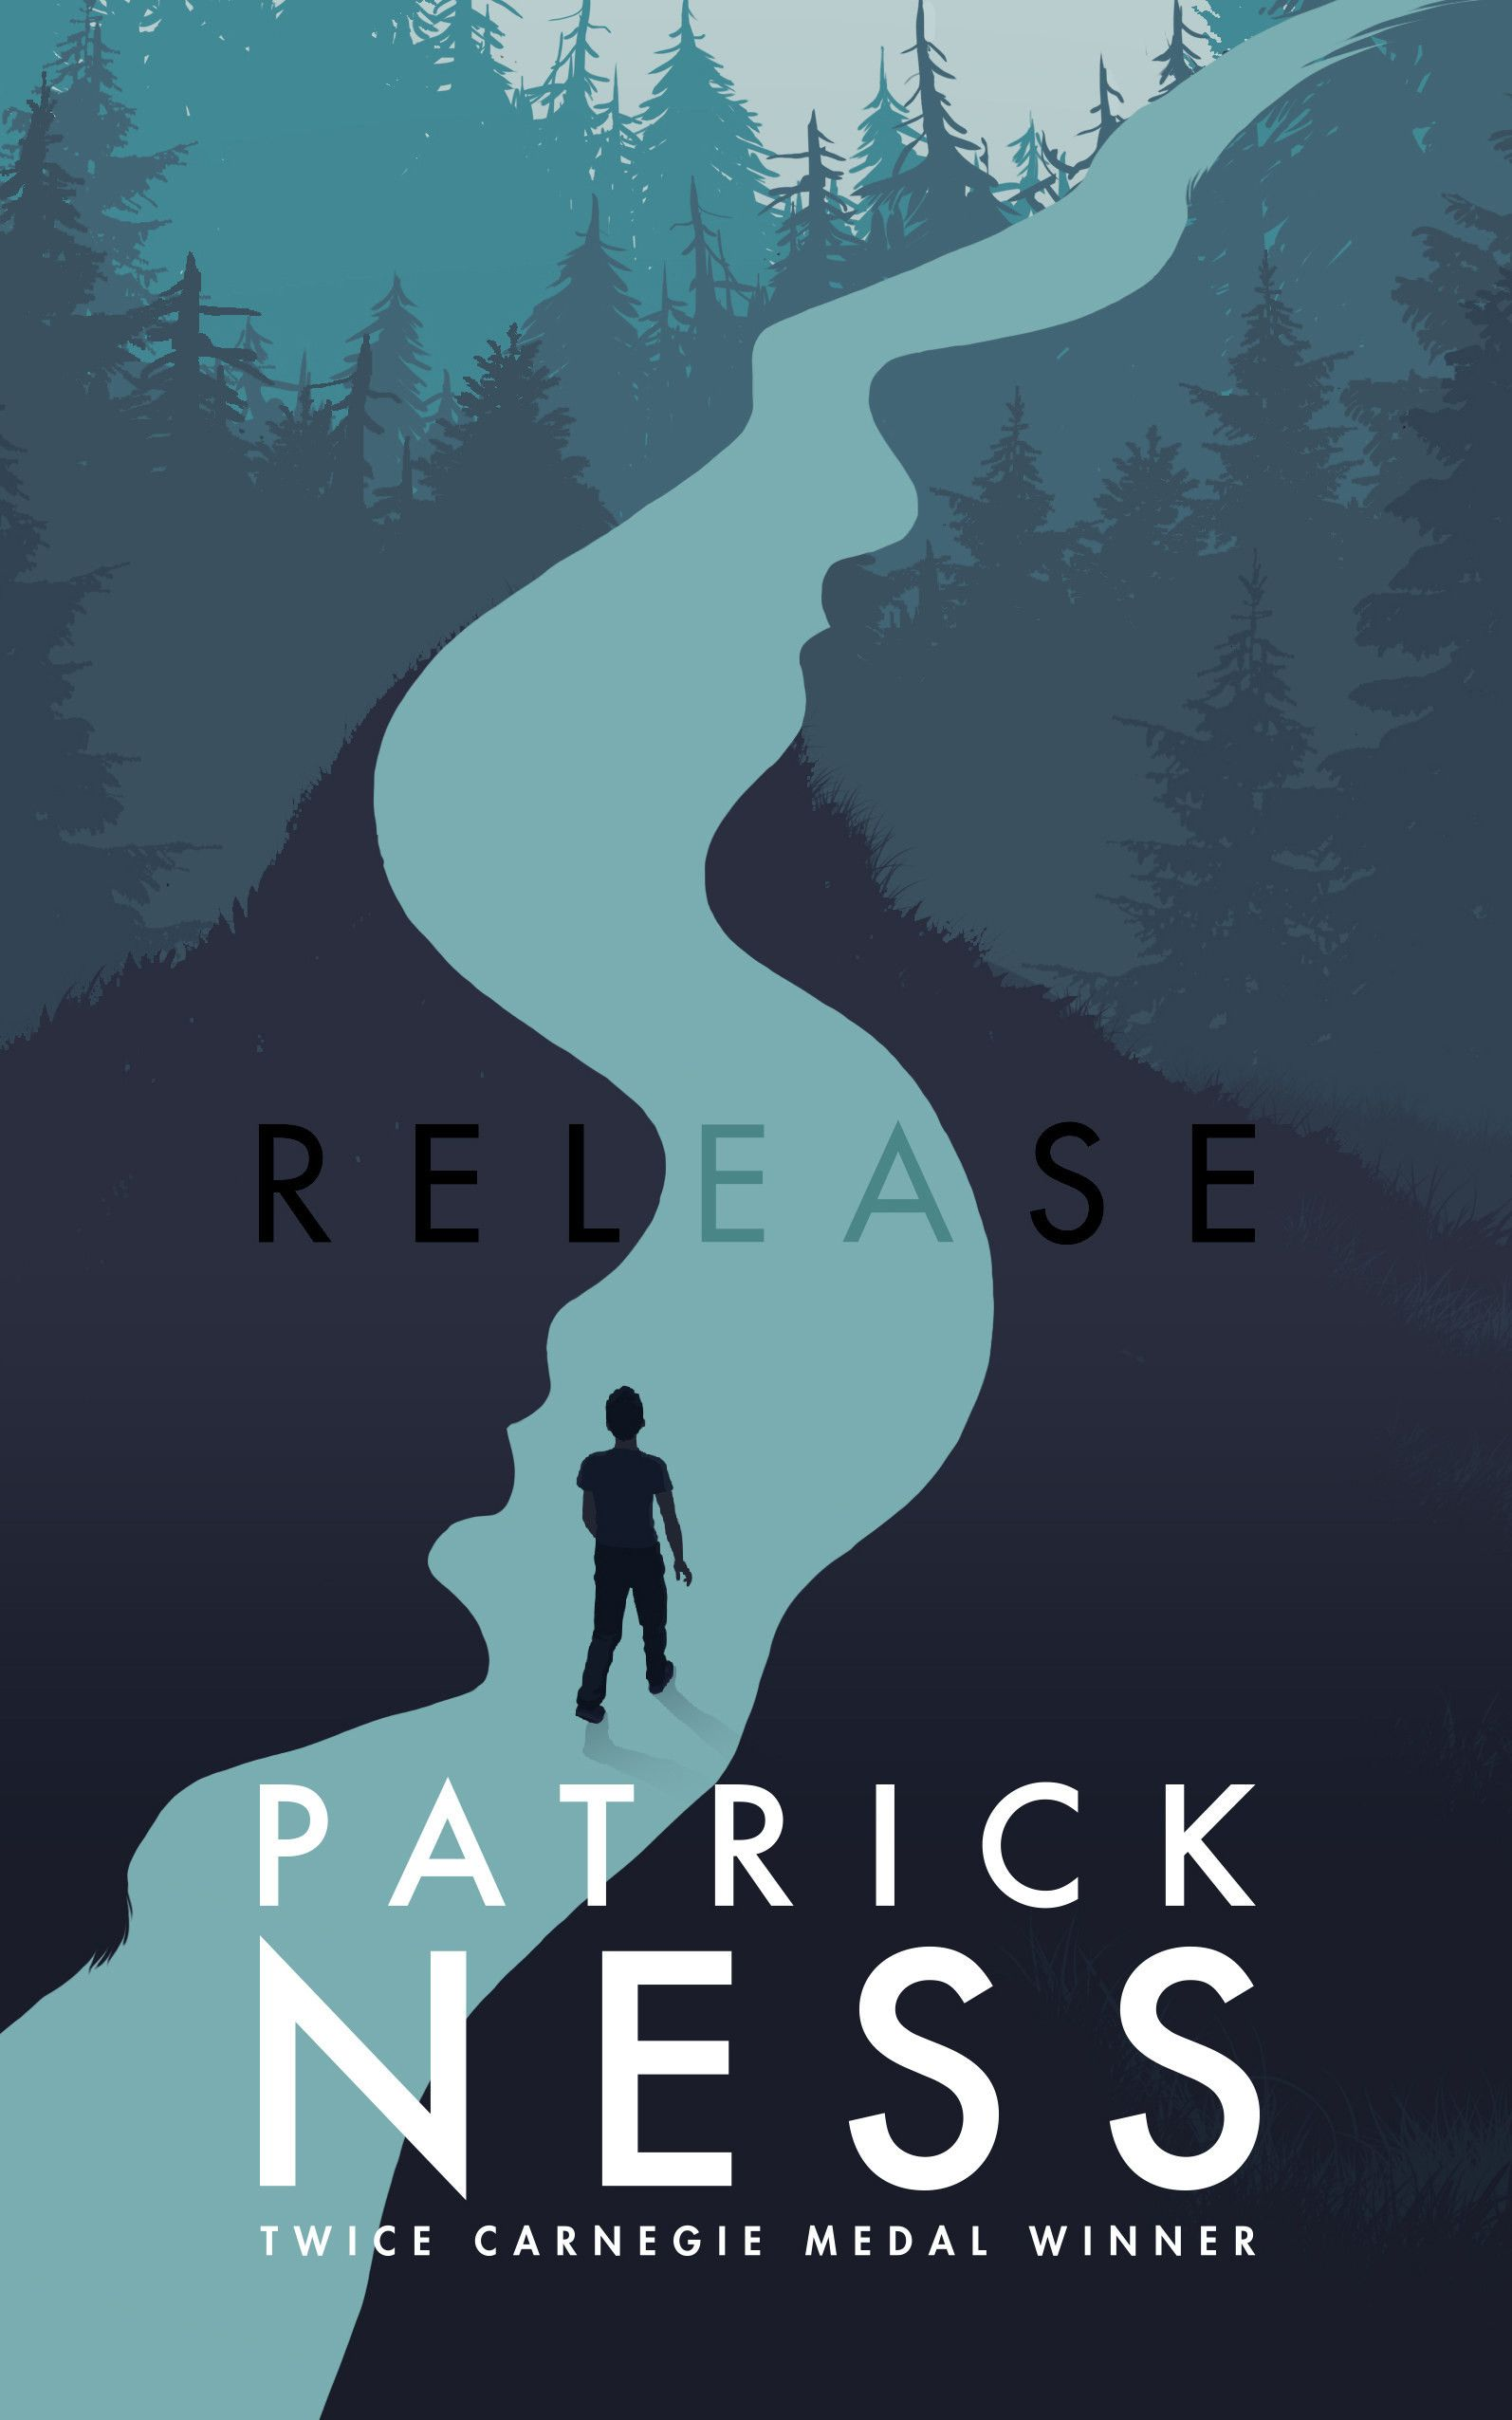 822ec55d48a37 Exclusive: Here's The Cover Of Patrick Ness's New Book | Cover ...